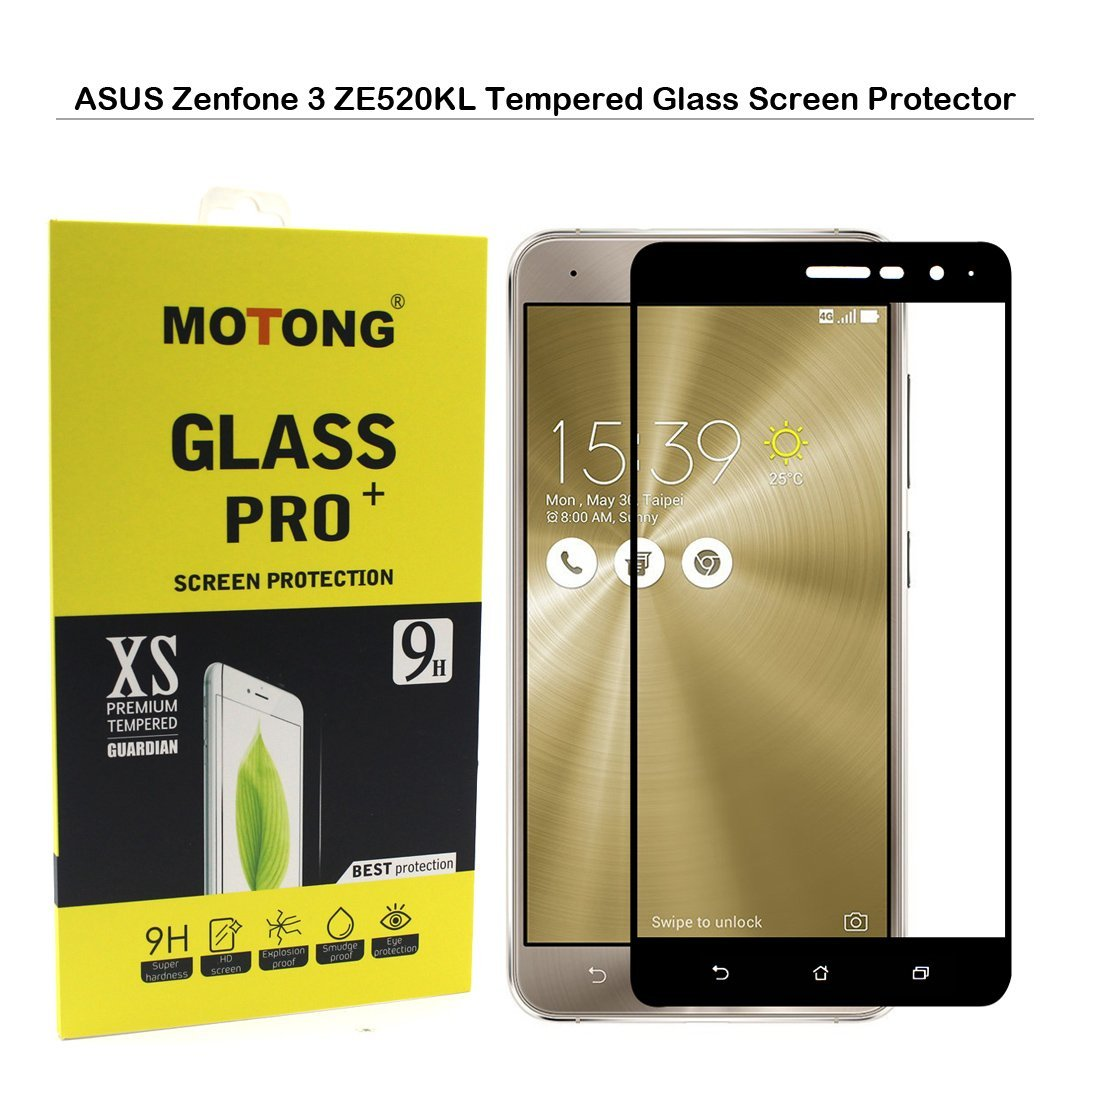 ASUS Zenfone 3 ZE520KL Tempered Glass Screen Protector - MOTONG Full Coverage Screen Protector for ASUS Zenfone 3 ZE520KL 5.2 inch,9 H Hardness,0.3mm Thickness,Made From Real Glass